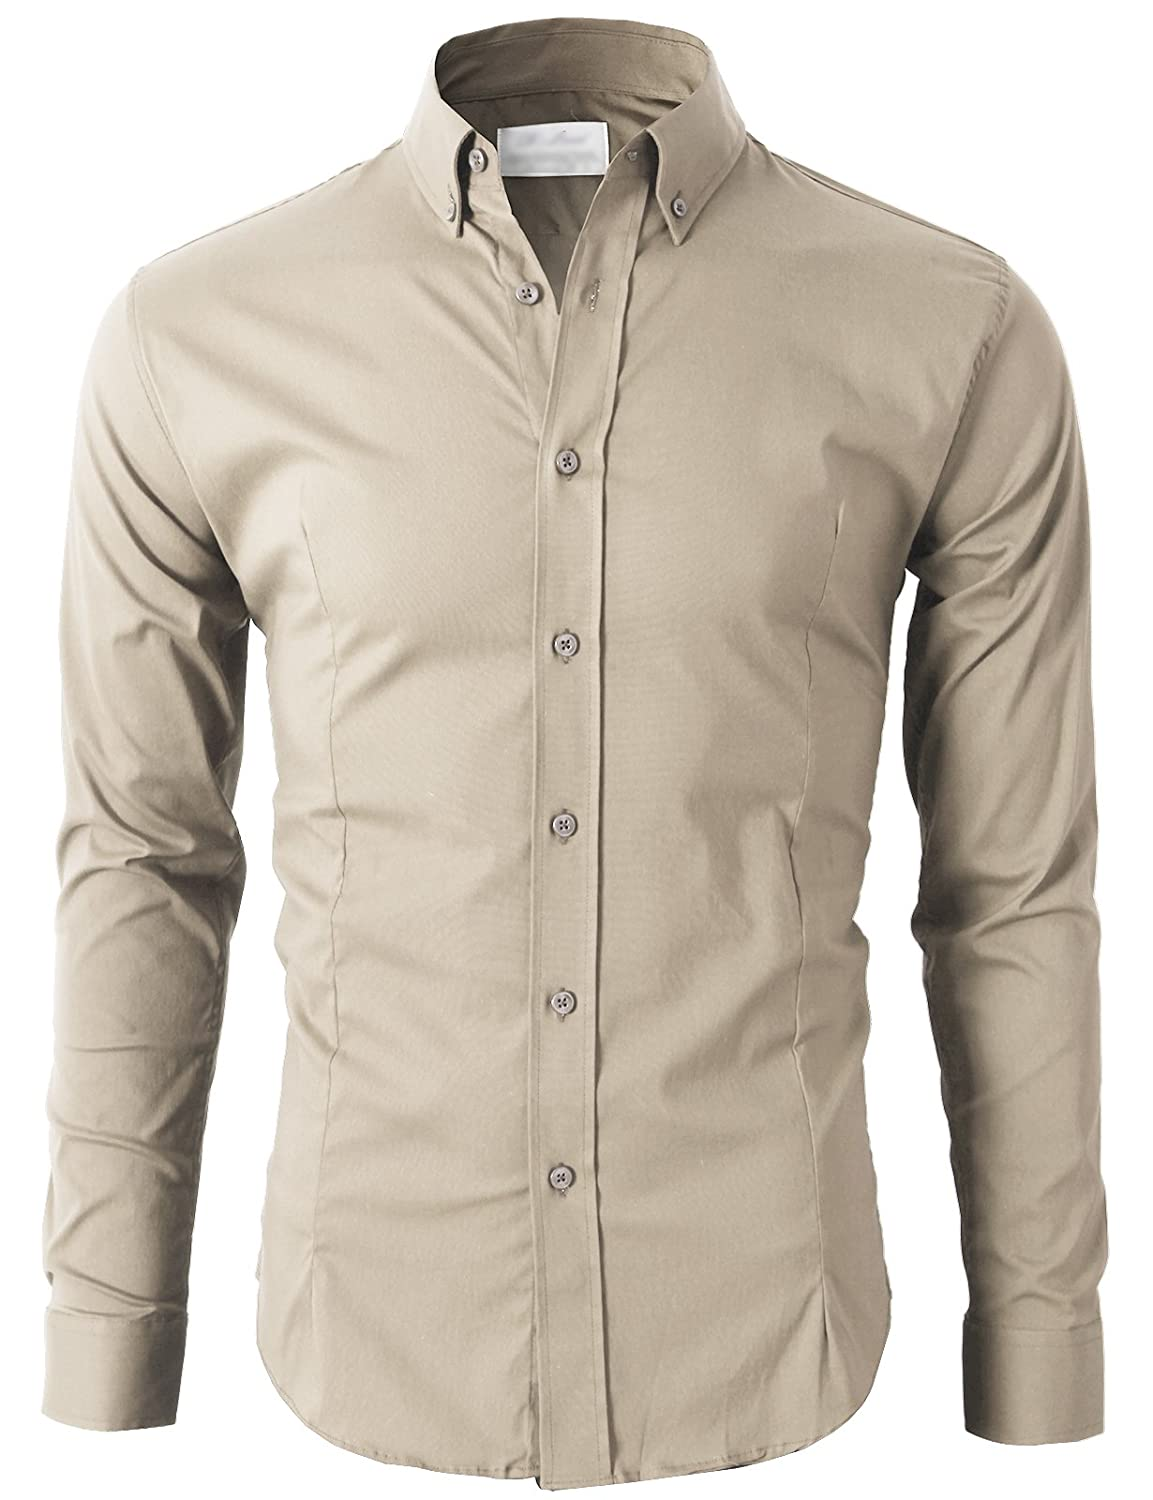 H2h Mens Casual Slim Fit Button Down Dress Shirts Various Styles At